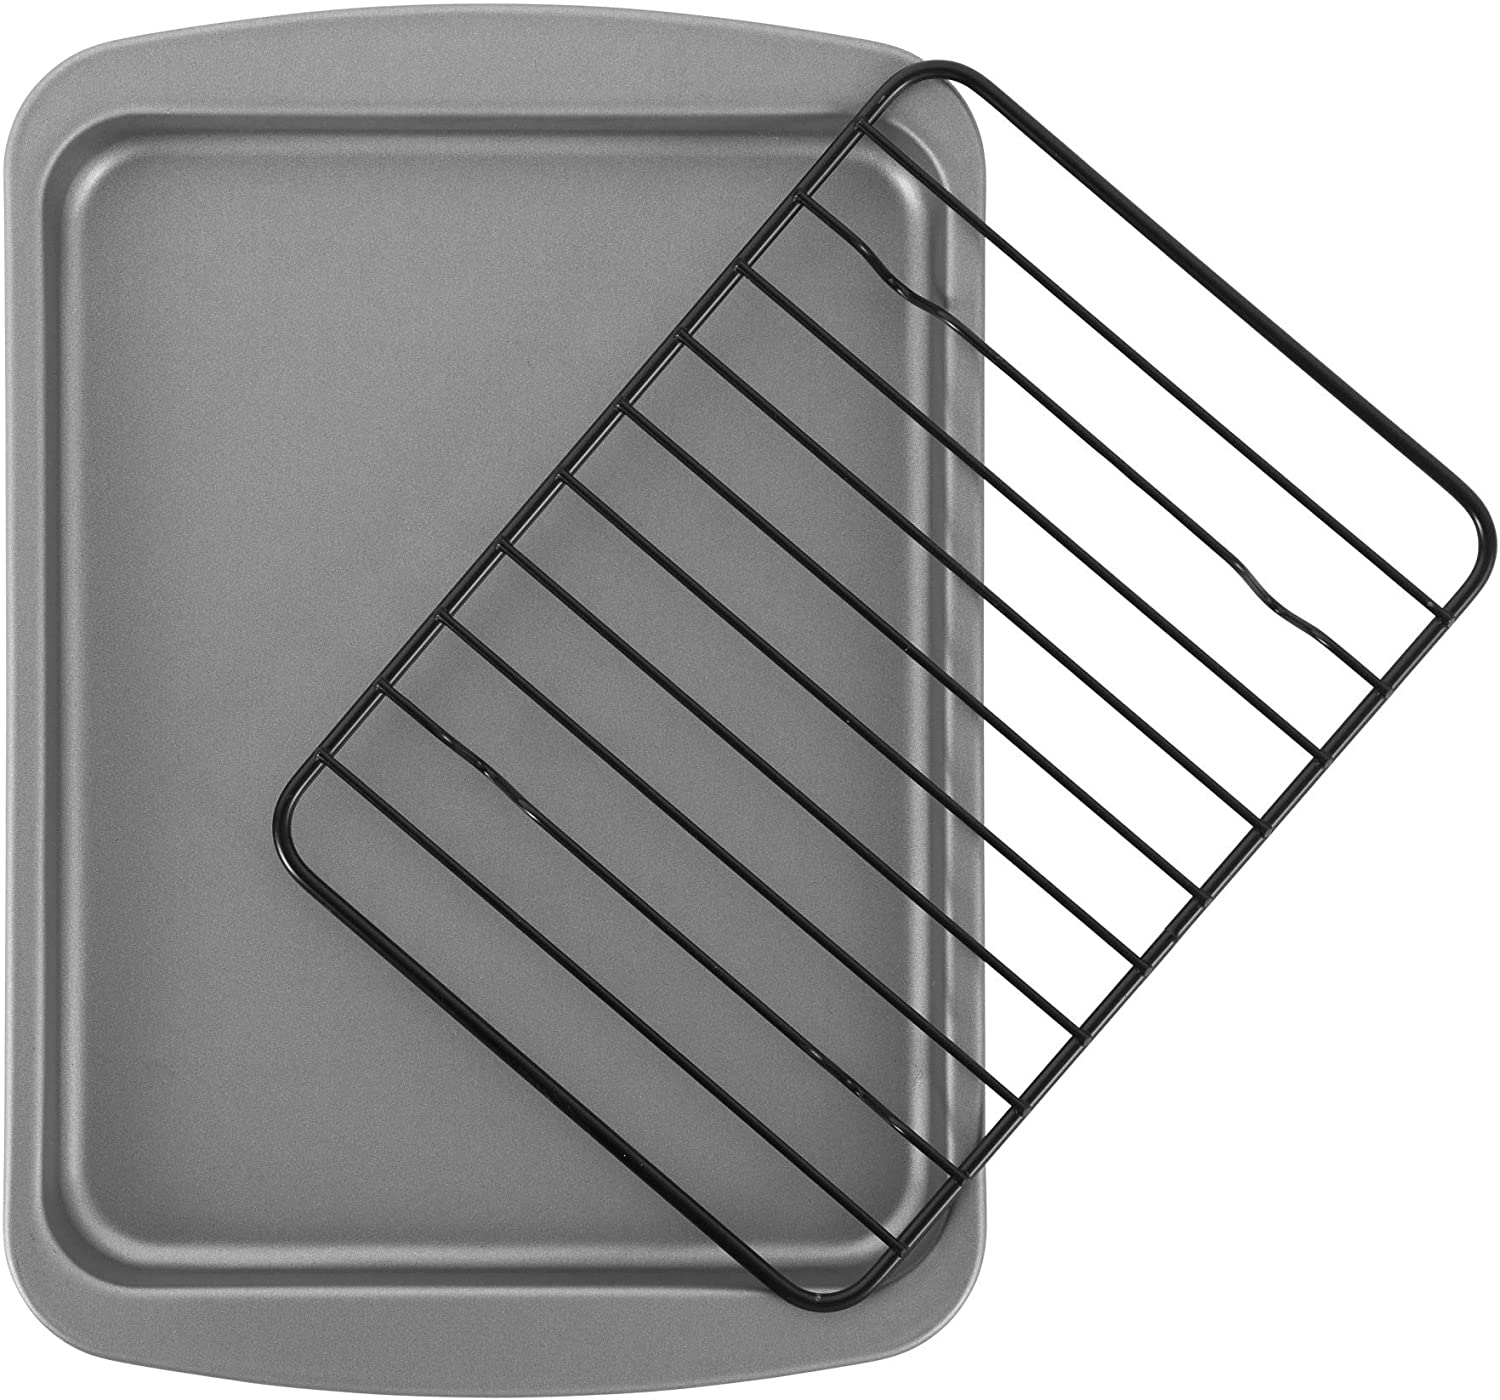 G & S Metal Products Company HG56R OvenStuff Toaster Oven Cookie Baking Pan with Nonstick Cooling Rack, 8.5'' x 6.5'', Gray